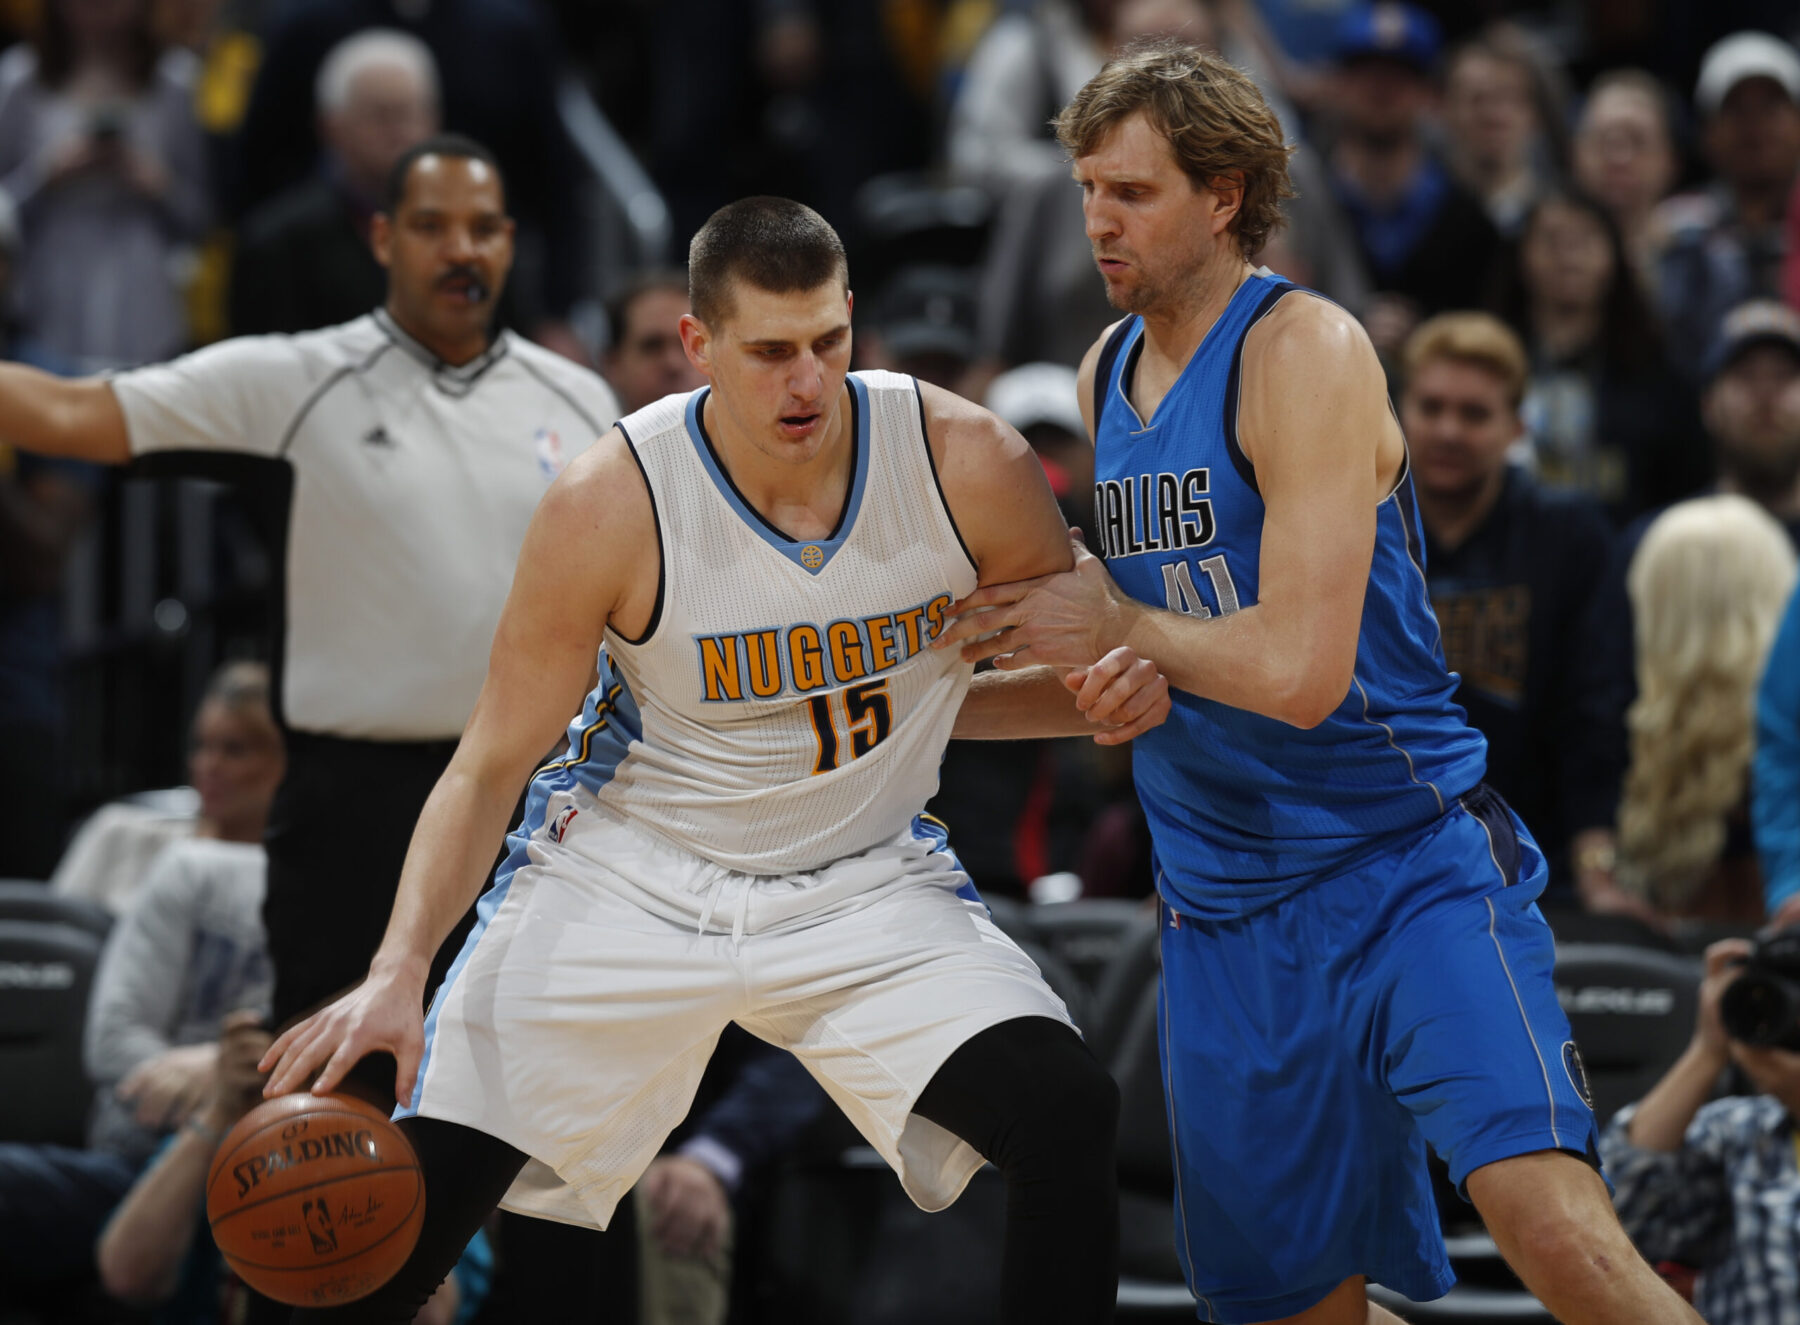 Nikol Jokic and Dirk Nowitzki